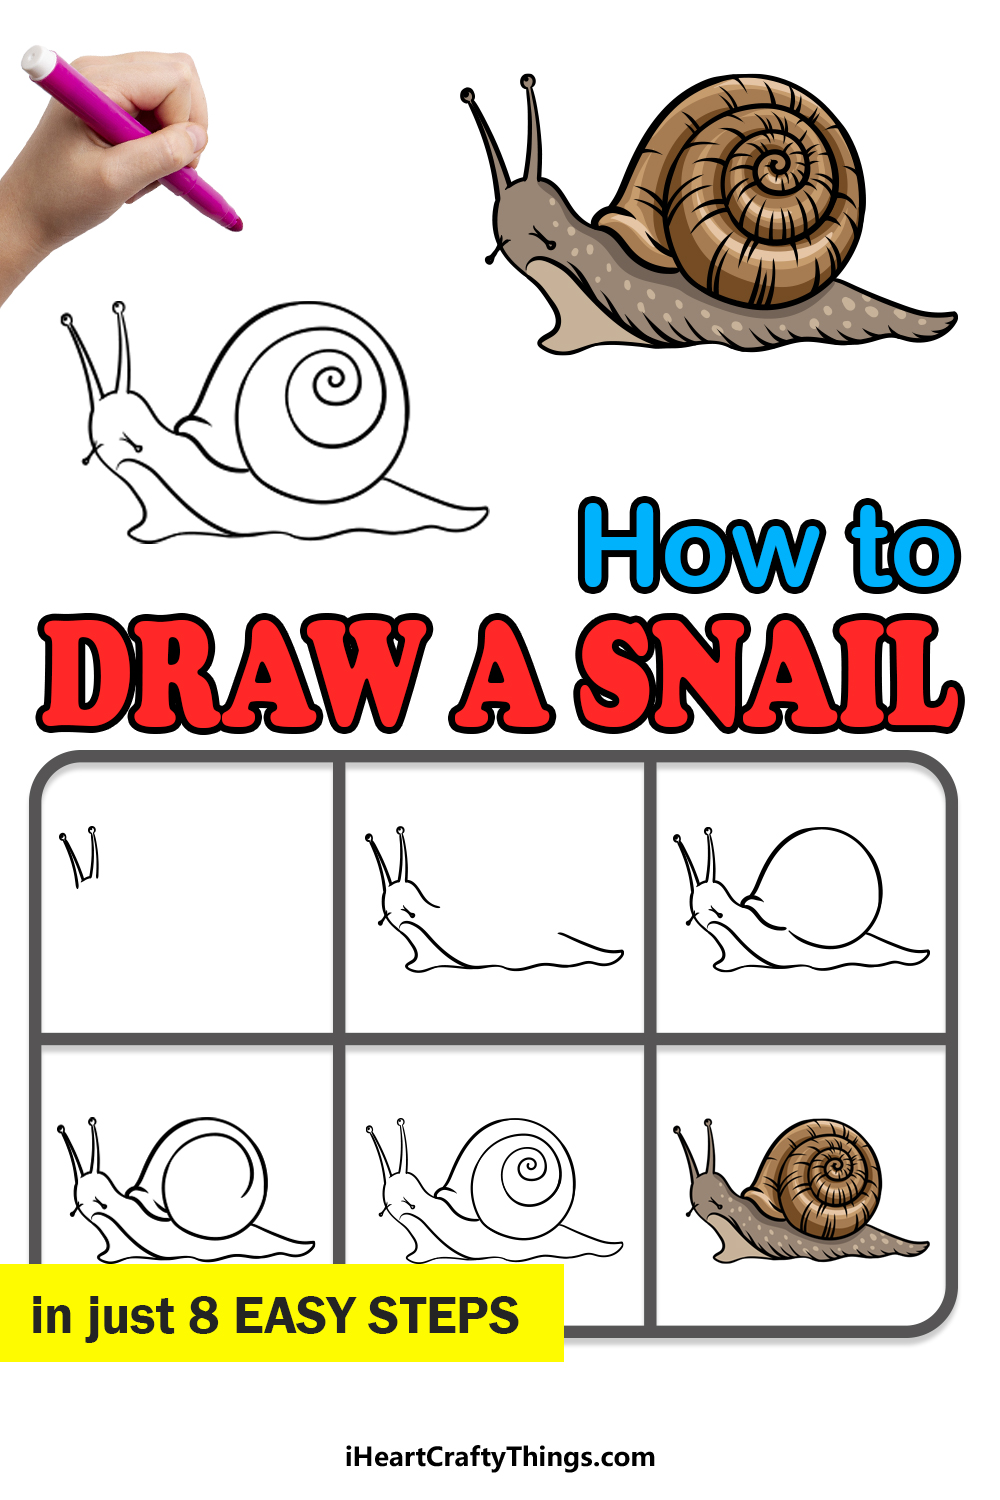 how to draw a snail in 8 easy steps